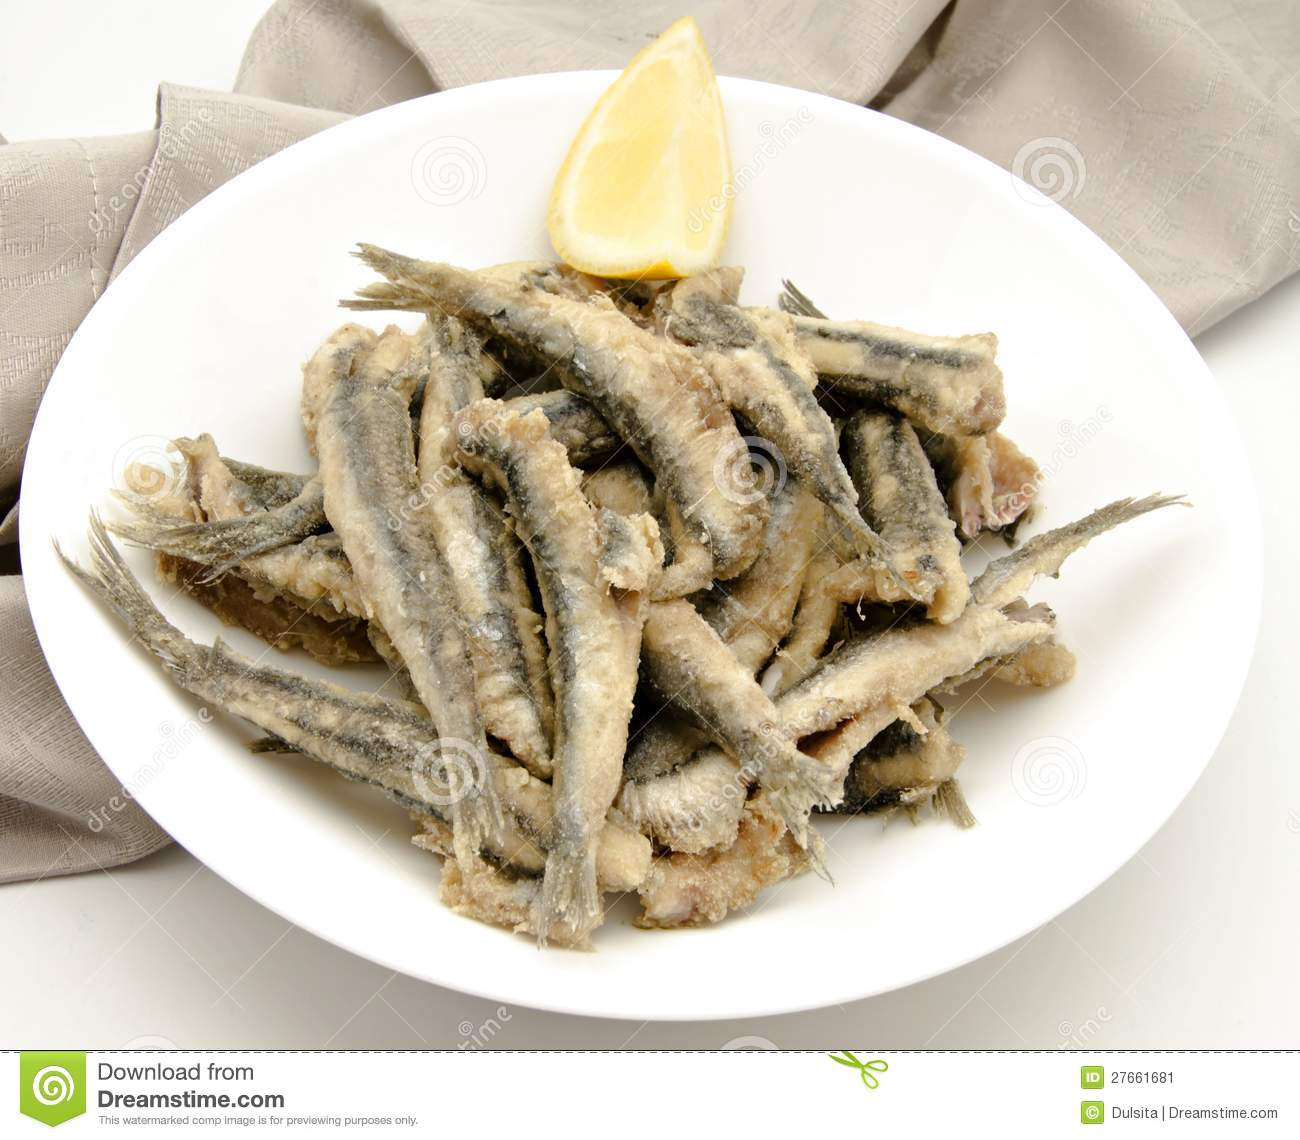 Fried anchovies typical of Spain served on a palte.